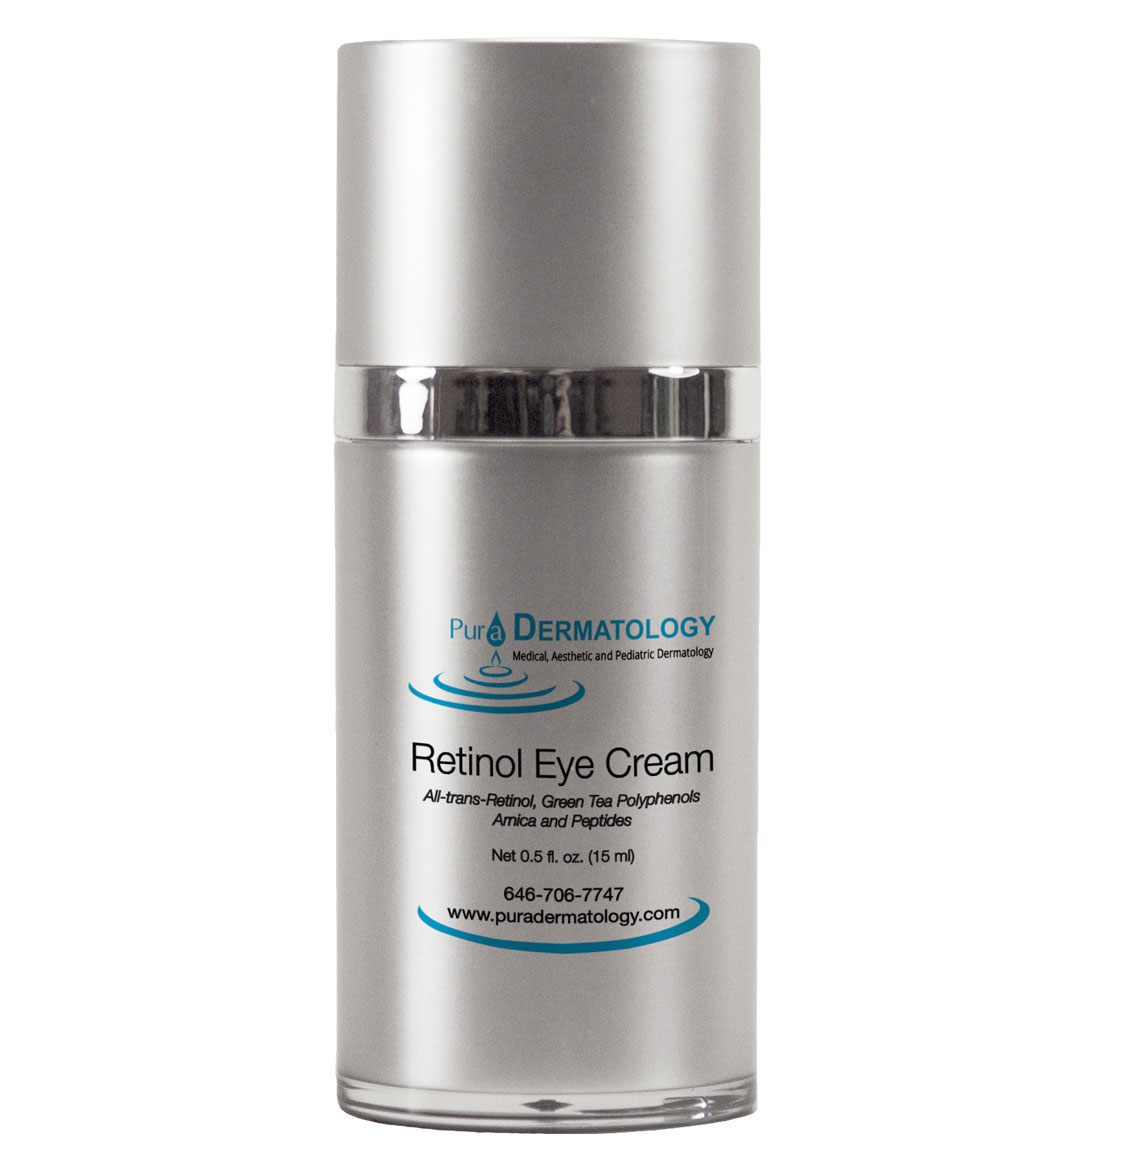 Retinol Volumizing Eye Cream